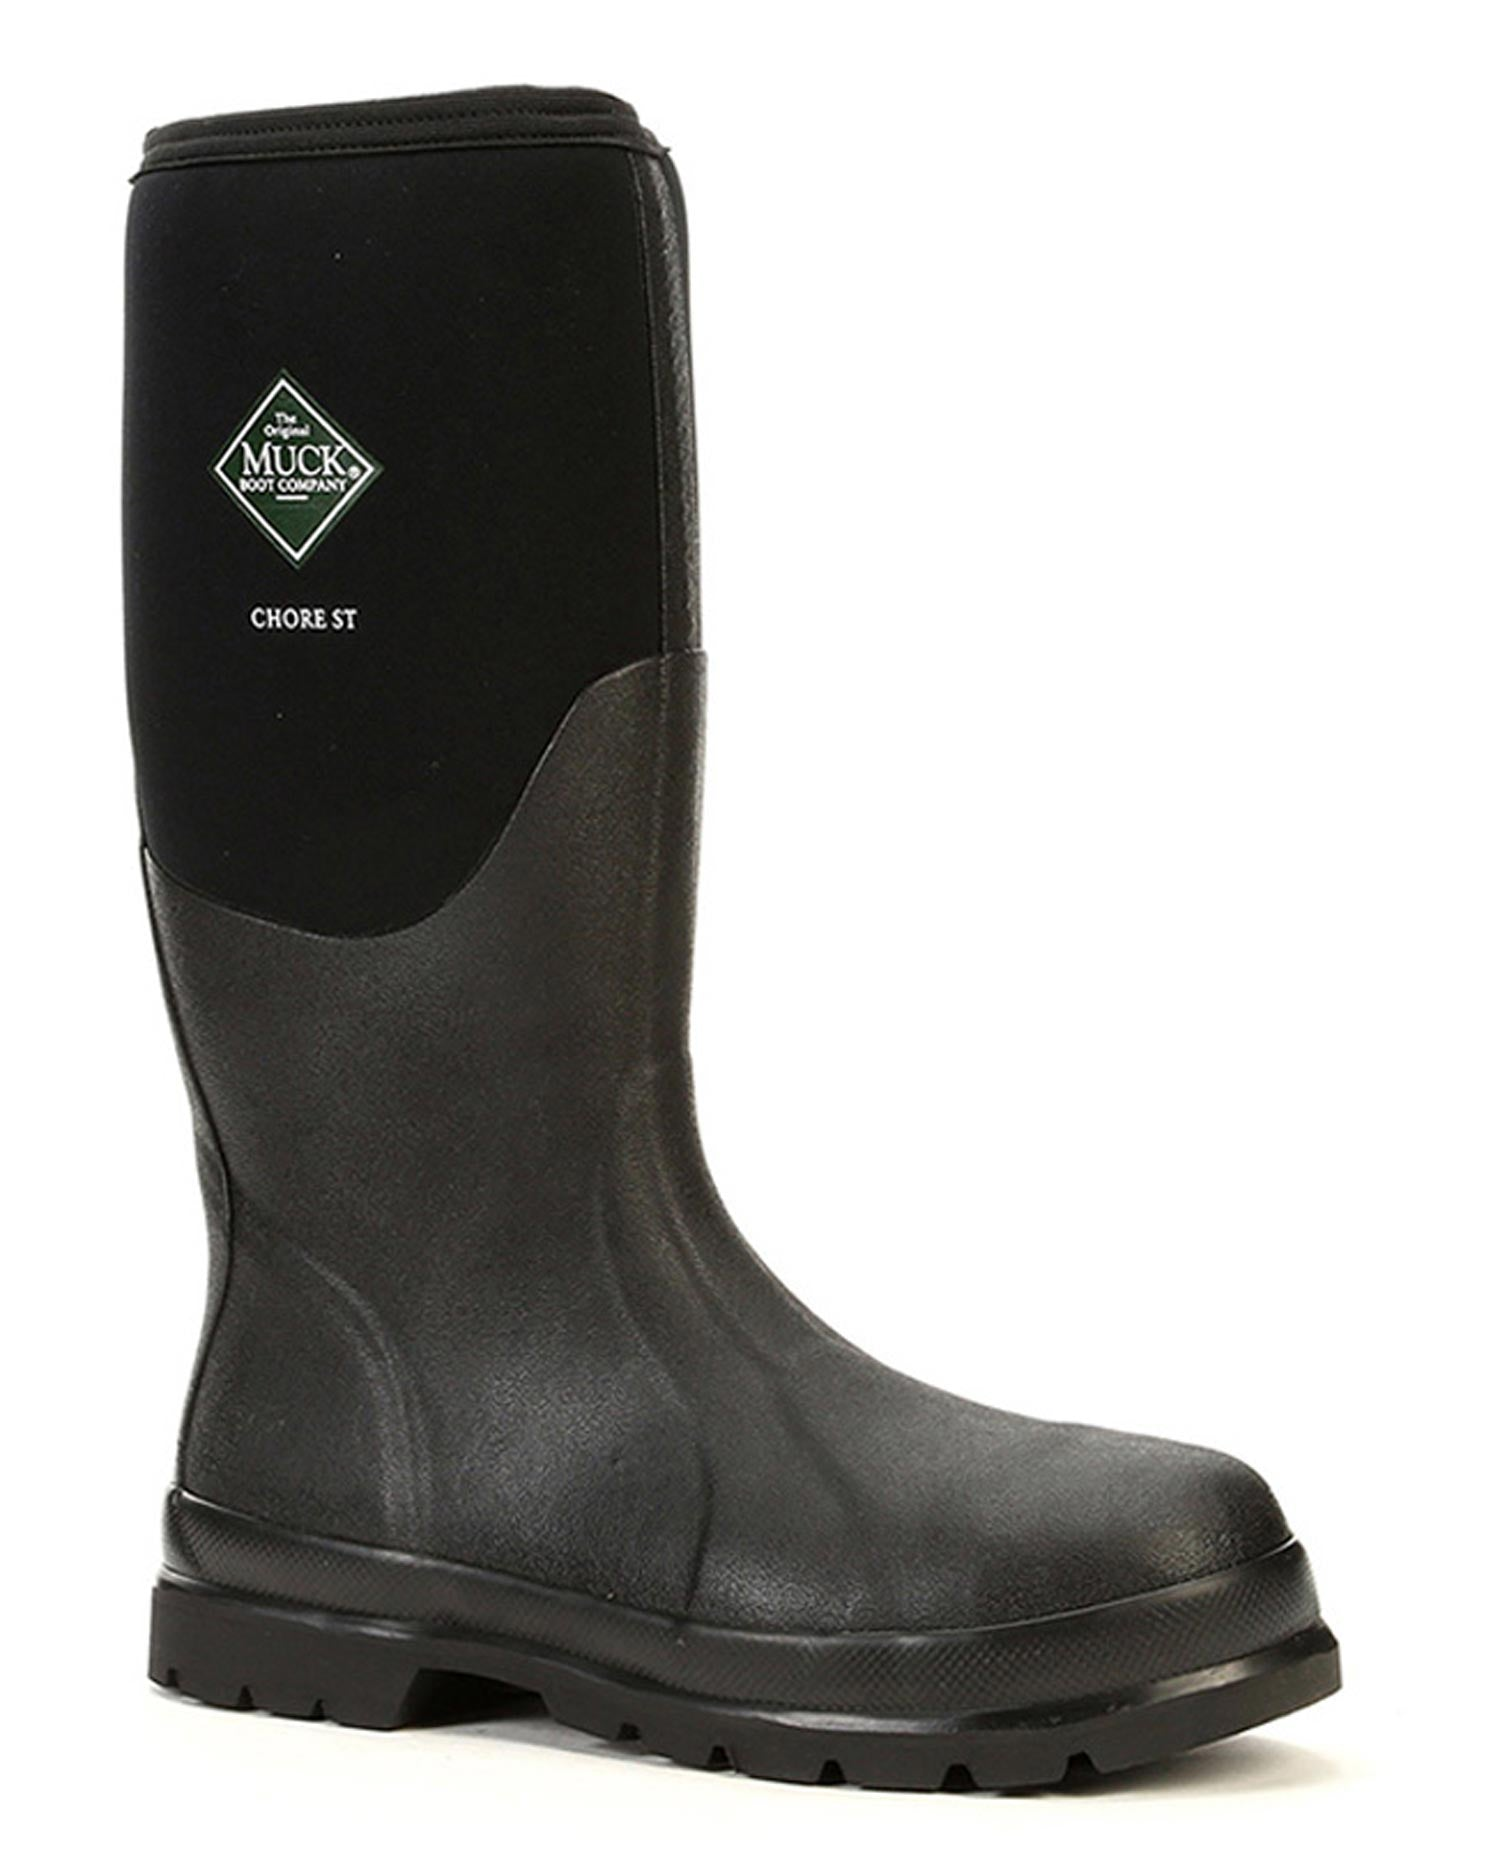 Chore Classic Tall Steel Toe Rubber Work Boots